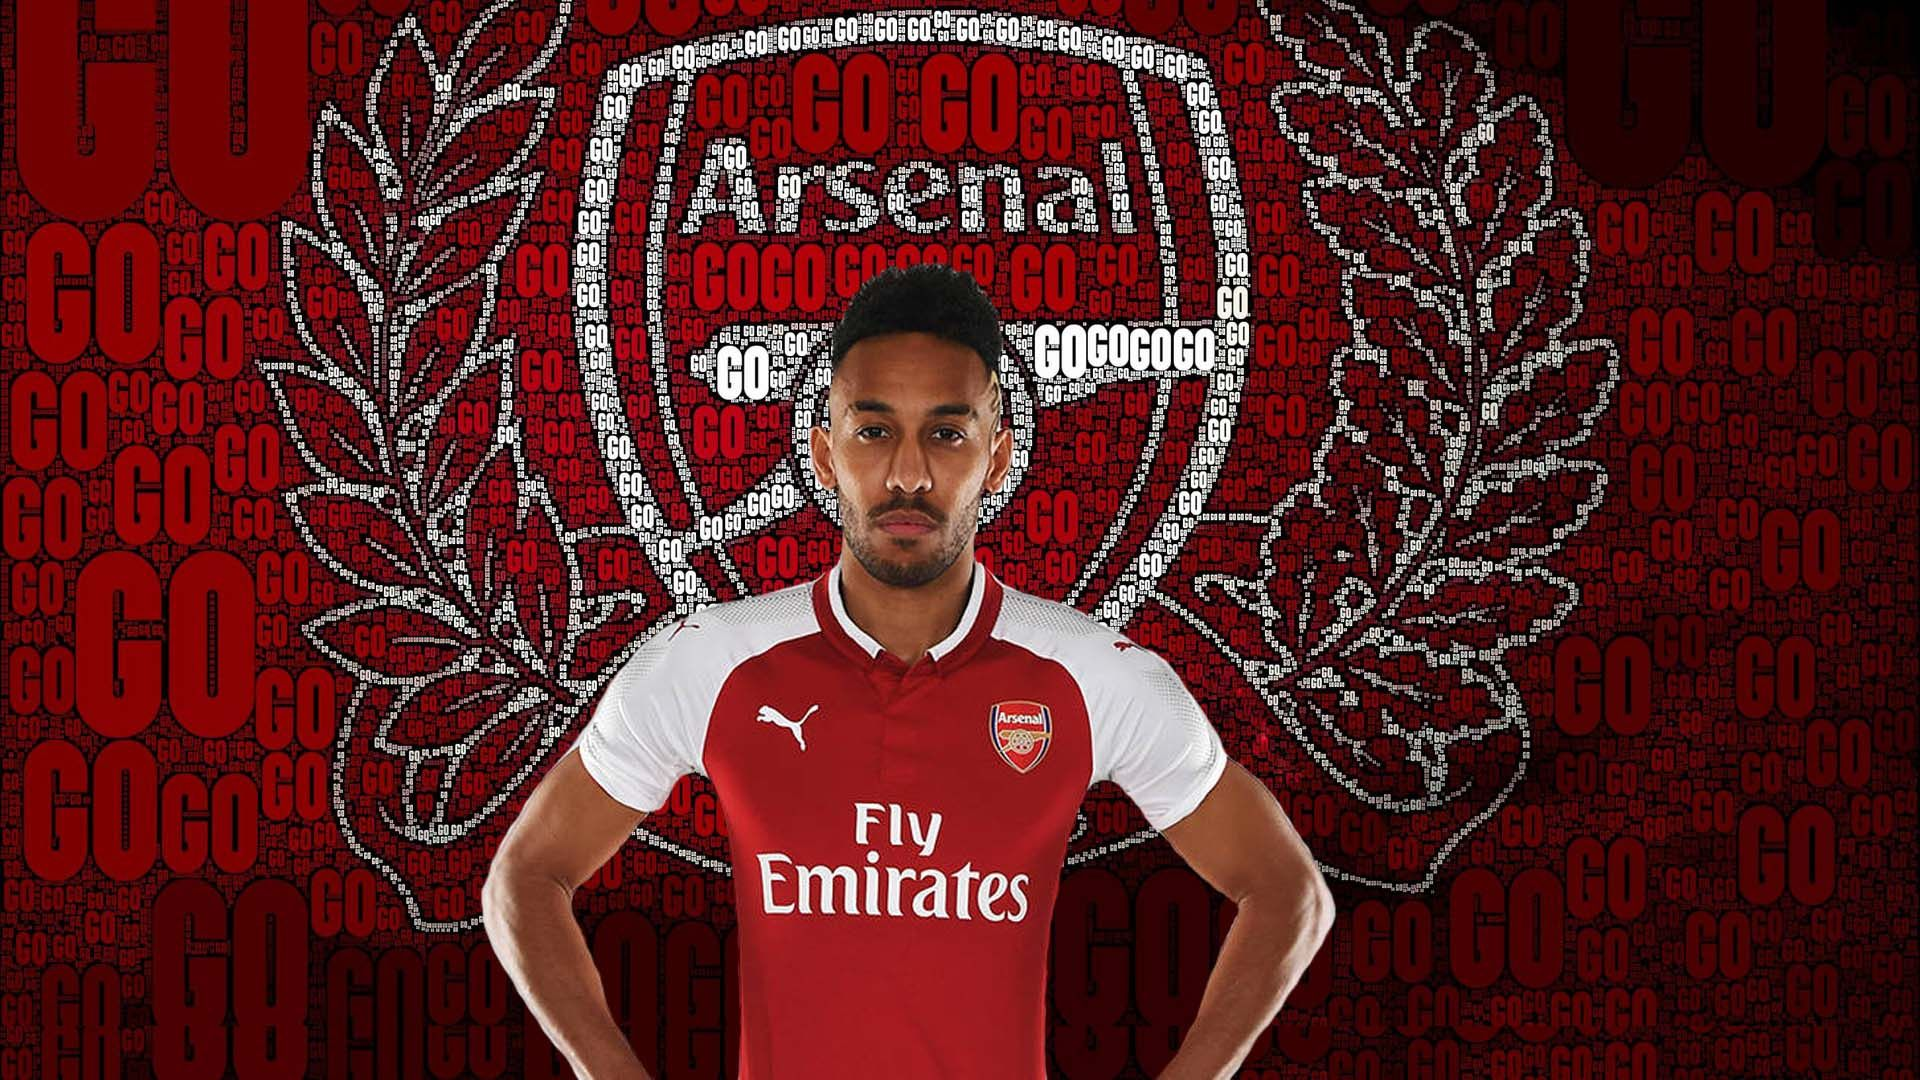 Aubameyang Arsenal Wallpaper HD